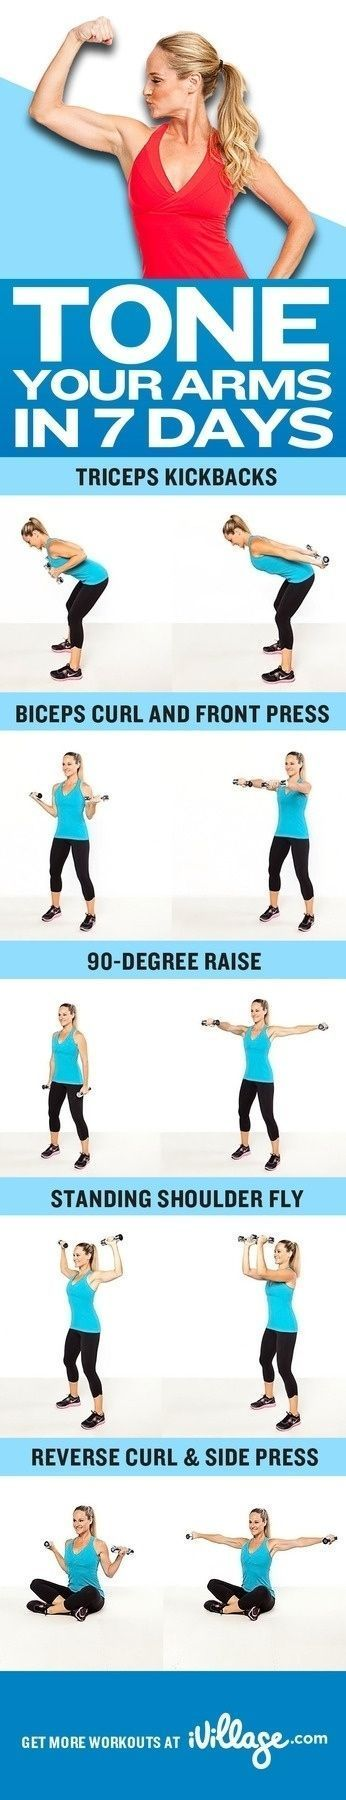 Whether you prefer running, walking, gym workouts, at home workouts, or group workouts, these tips and tricks are all the inspiration you need to put the Ho Hos down, lose weight, and get back into shape! 2064 337 8 Fit Bottomed Girls Motivation FASHION WOMEN WEAR Like it ~~ I have similar pins too. pls follow each other